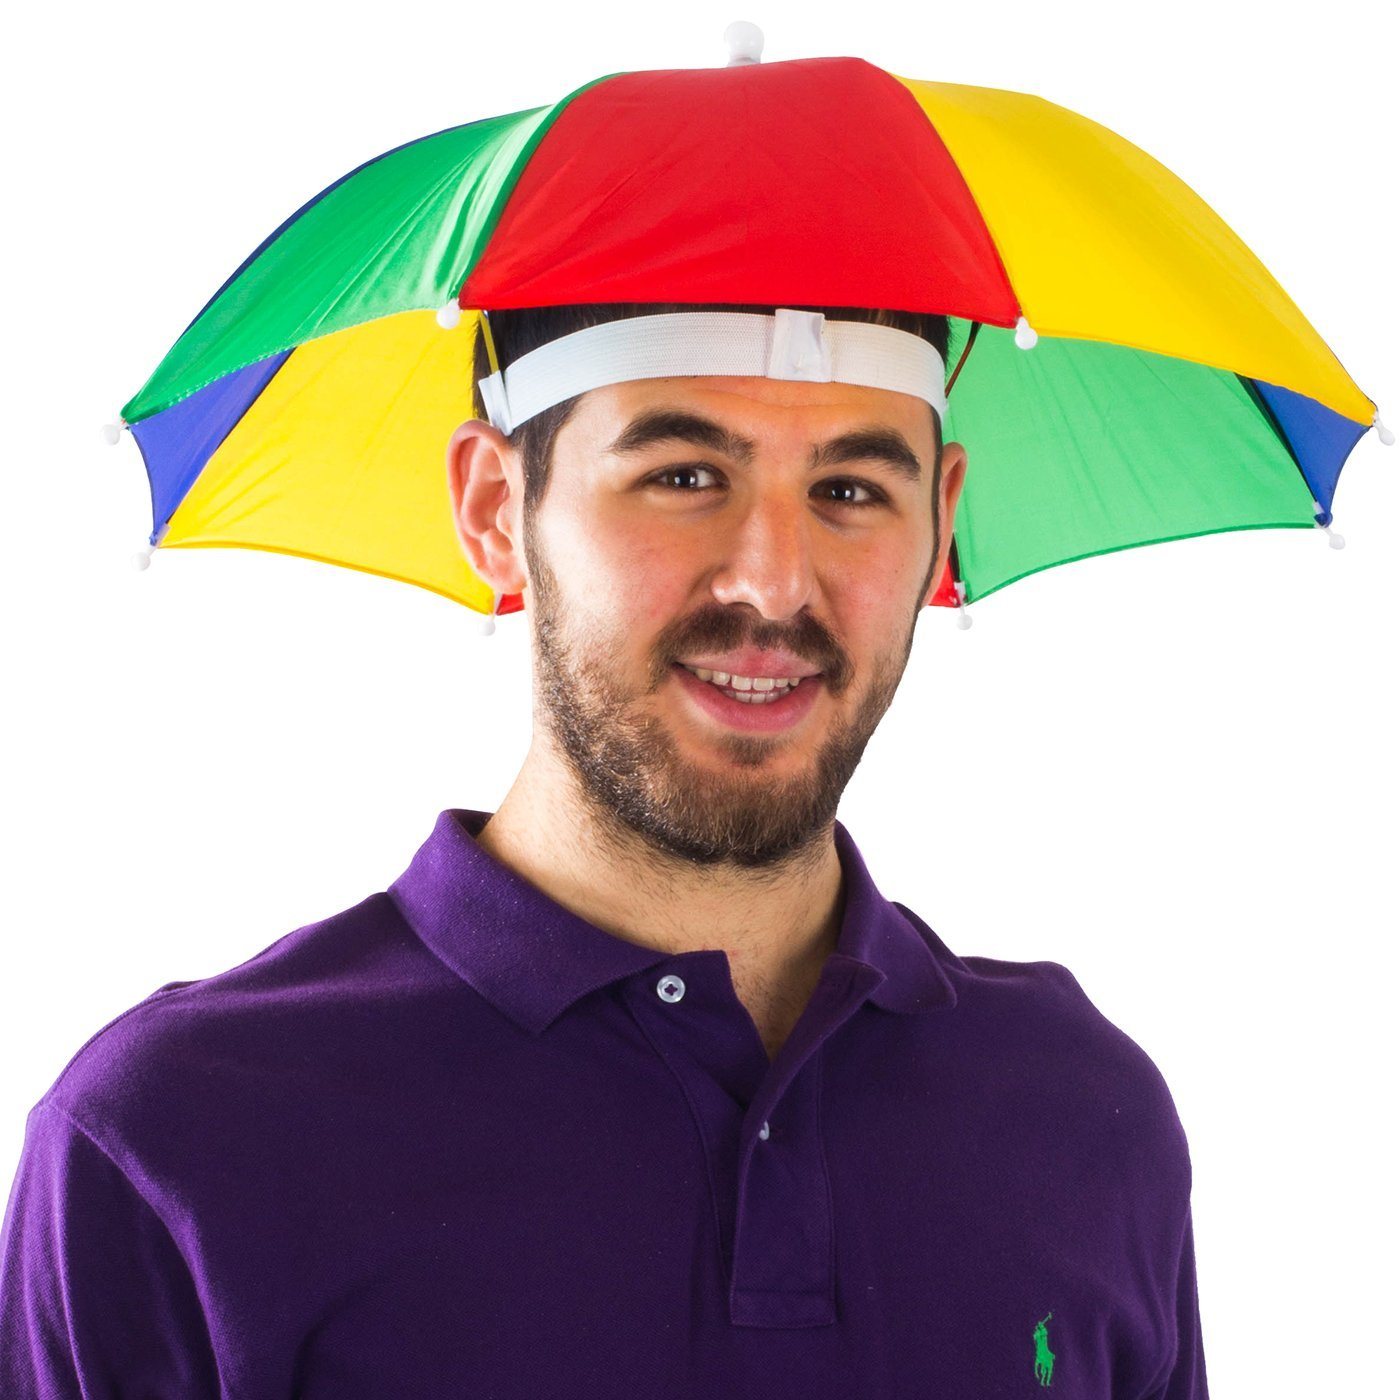 bb063ec166fd8 Get Quotations · Funny Party Hats Umbrella Hat - Fishing Umbrella Hat For  Kids and Adults - Elastic